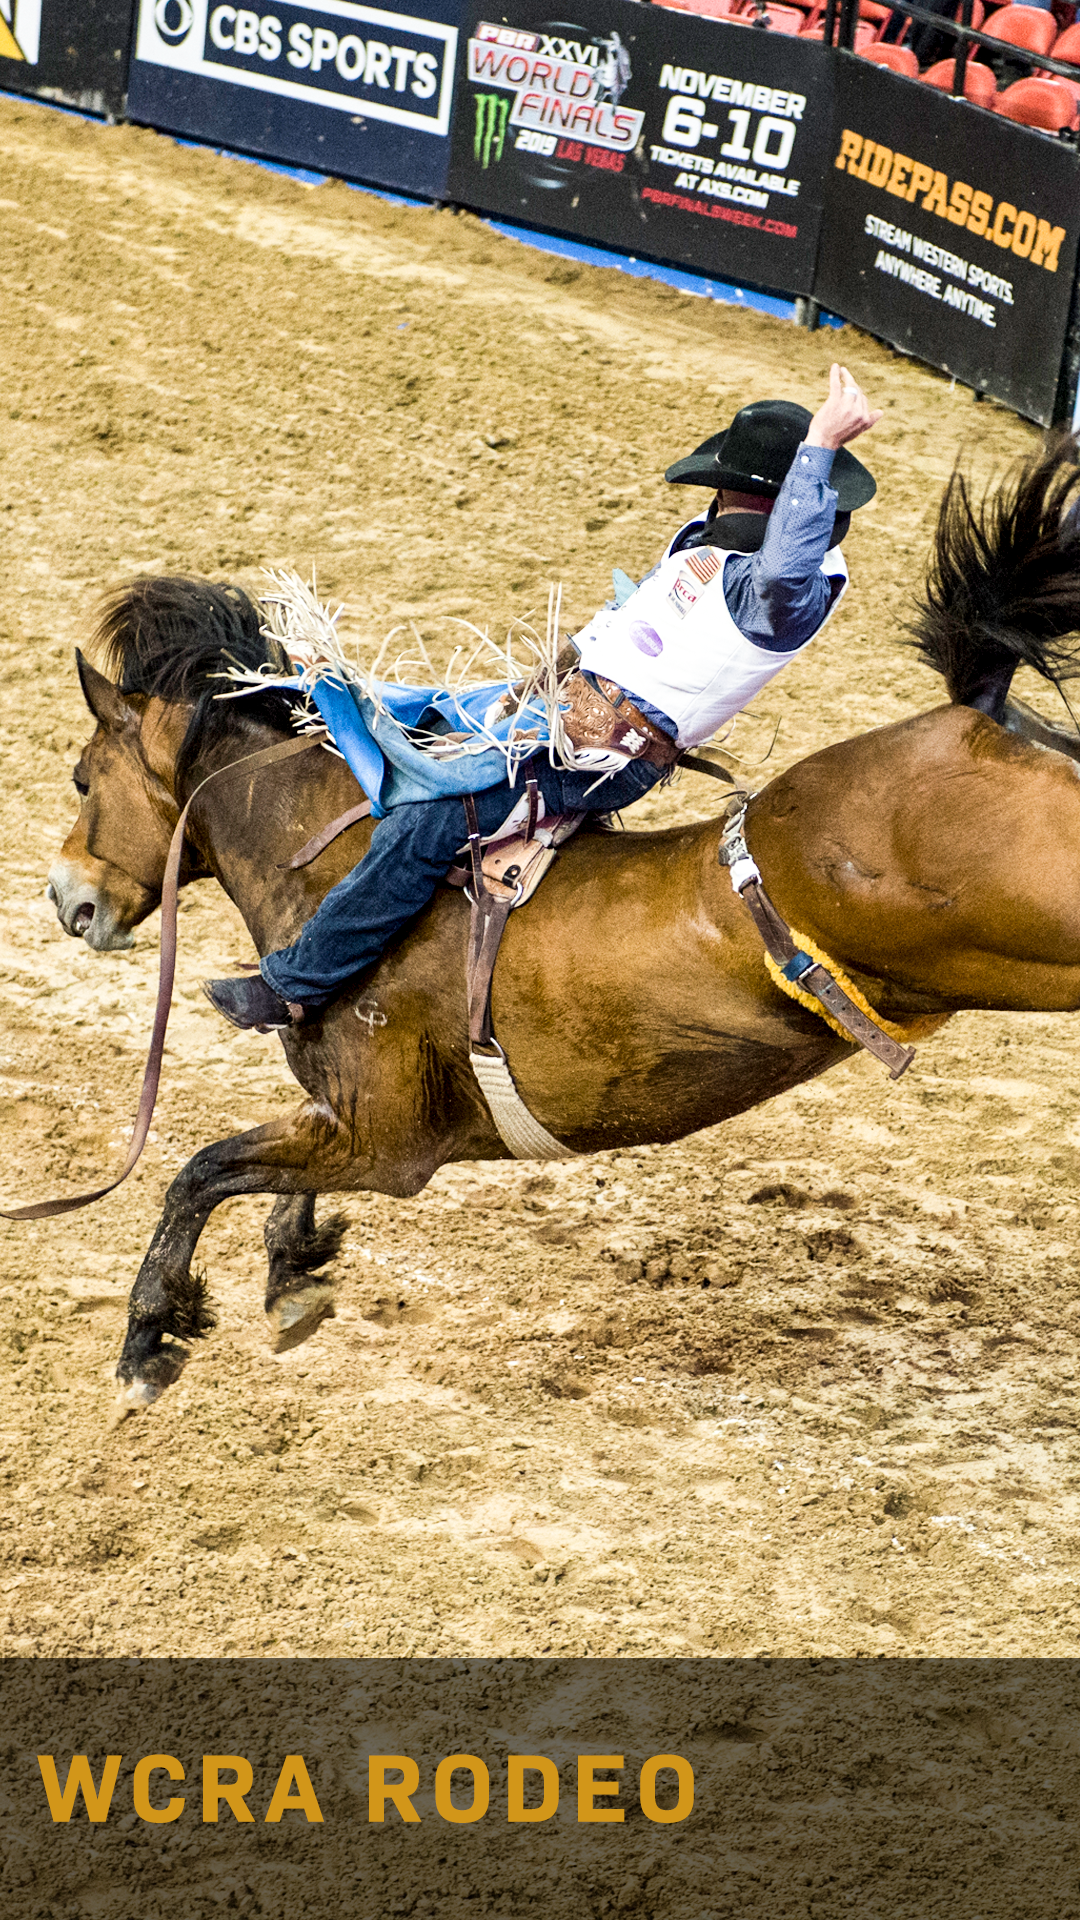 Stream WCRA Rodeo Showdown - FOUR $100k Major Rodeos and THREE WCRA Semi-Finals Rodeos